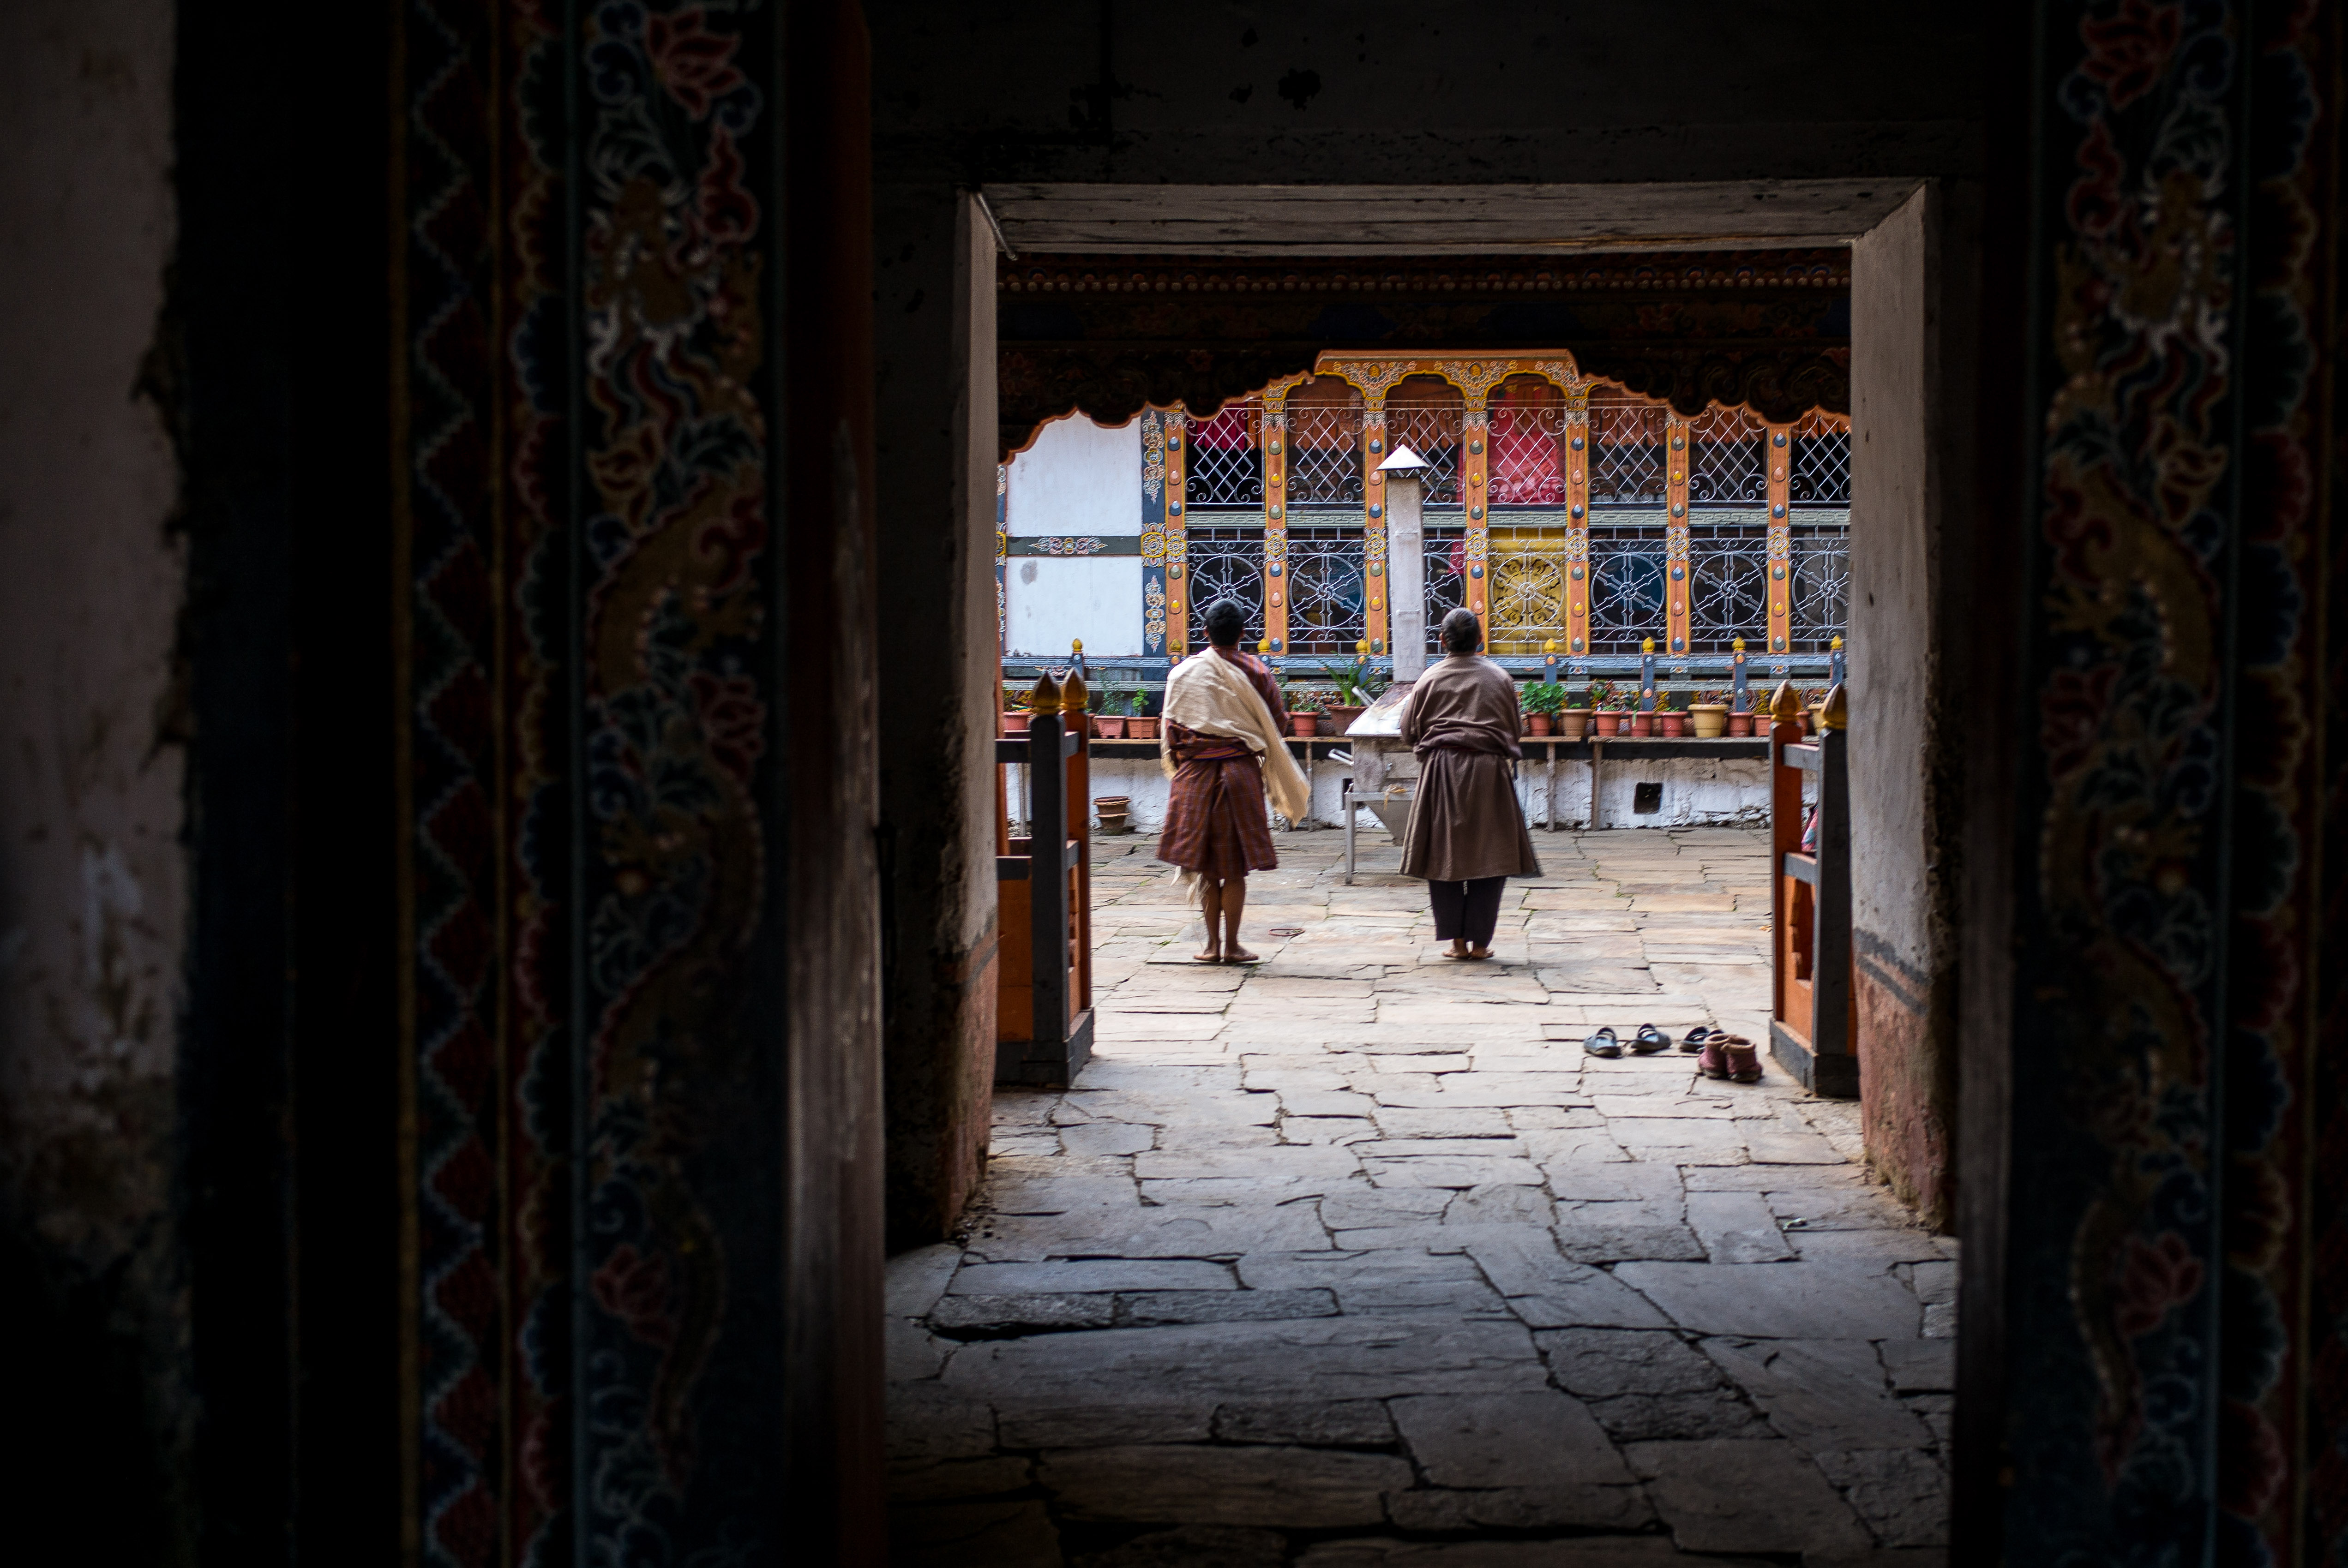 Praying in bhutanese temple